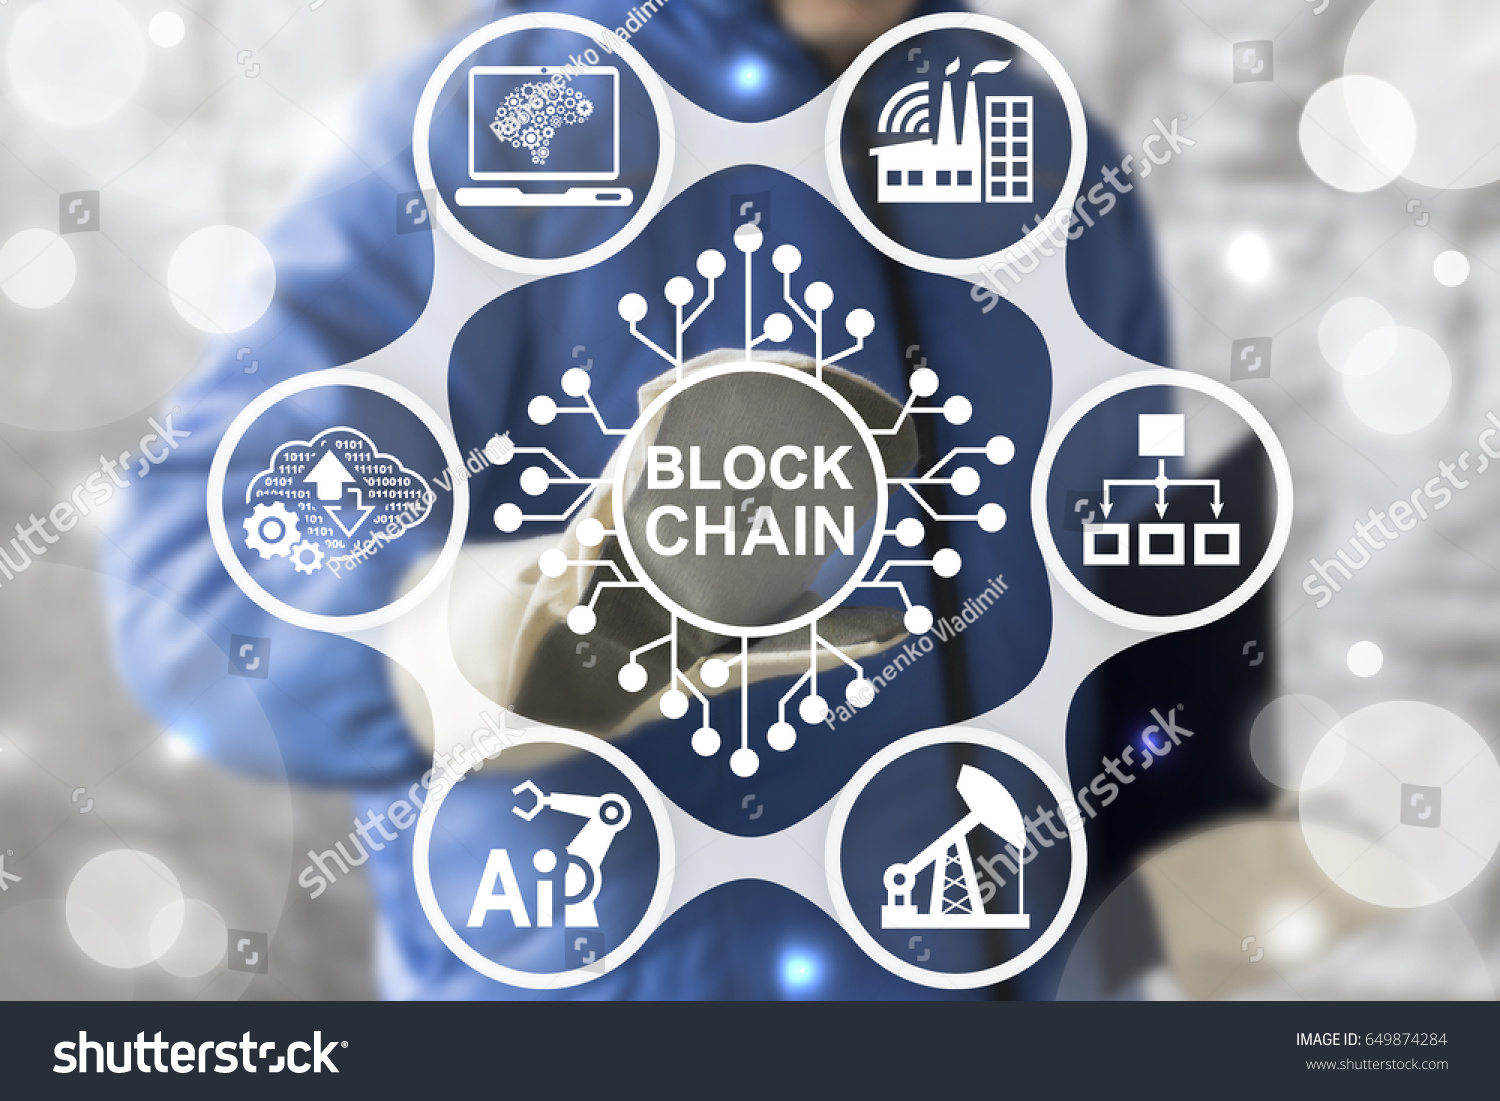 Blockchain Industrial Strategy Concept. Block Chain Industry 4.0 Technology. Worker touched blockchain microchip (circuit) icon on virtual screen. IT structure integration in manufacture. #649874284